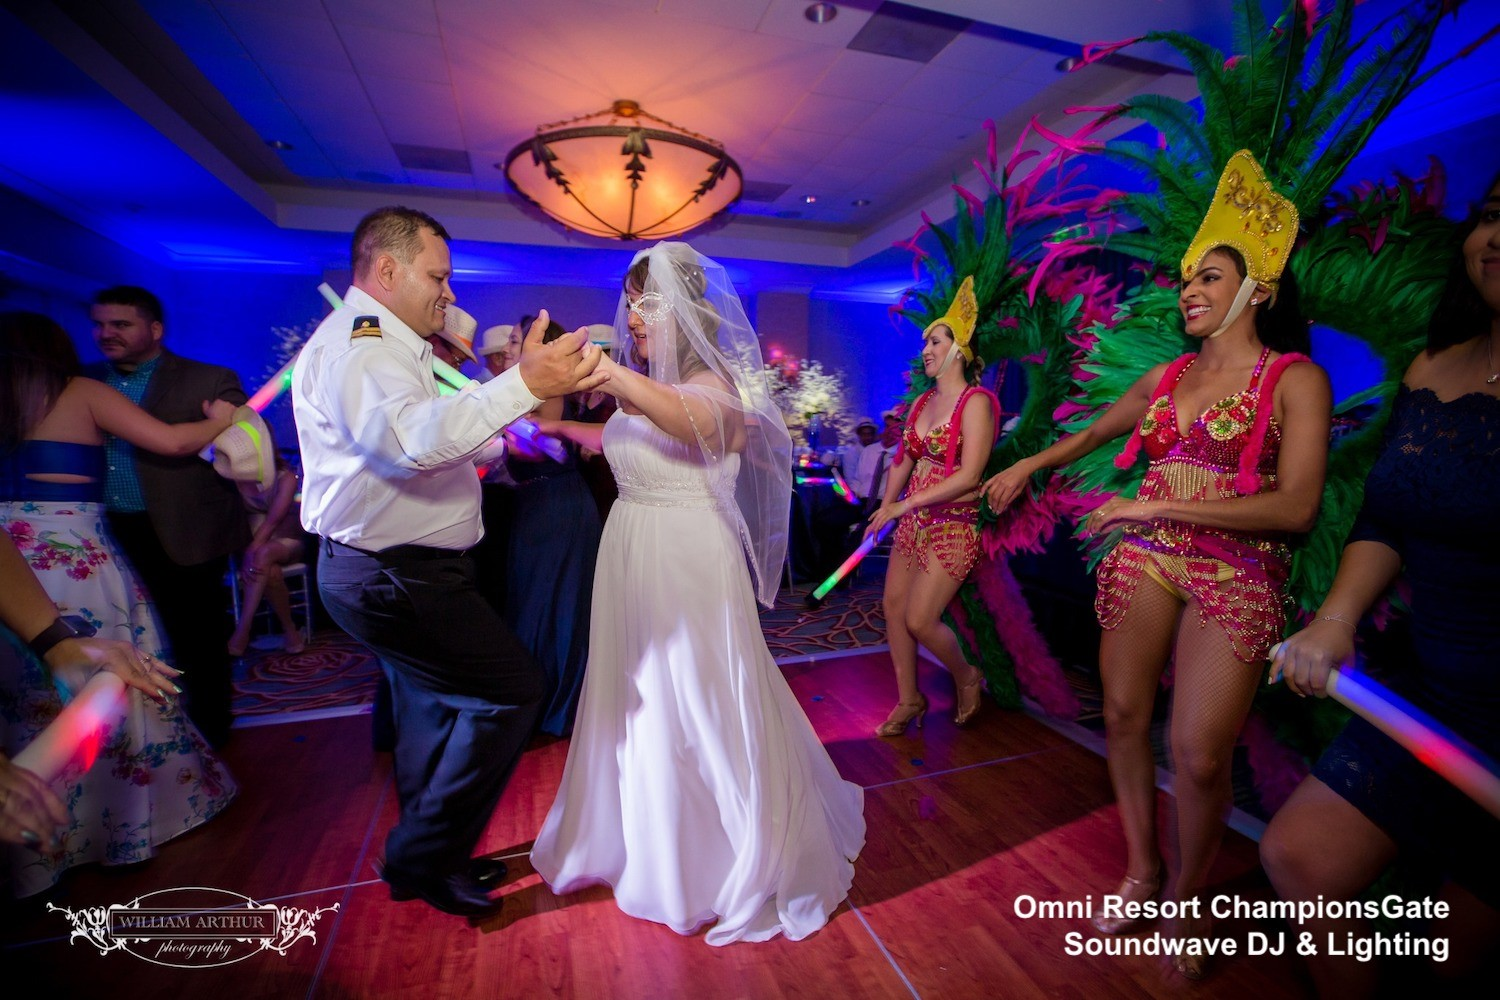 Omni orlando resort at championsGate - orlando wedding venue - orlando wedding dj - orlando dj - soundwave entertainment